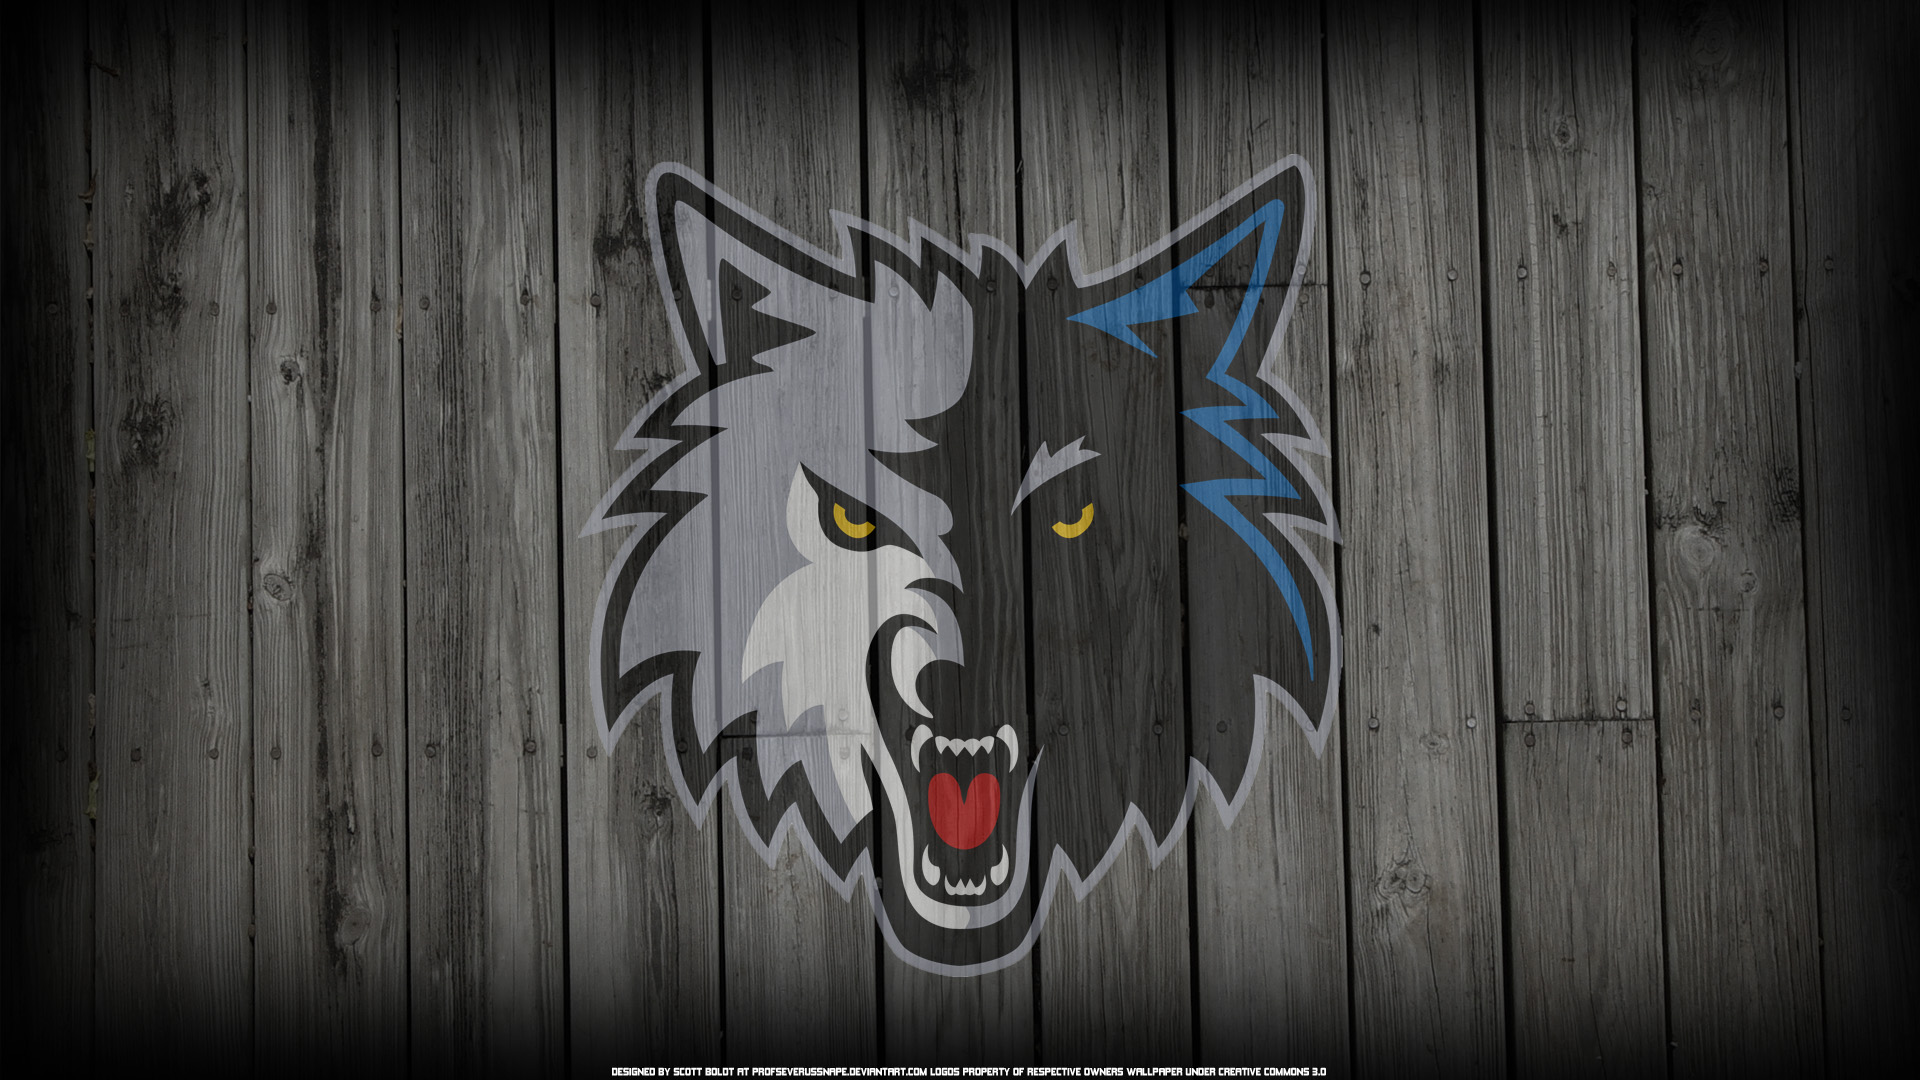 Minnesota Timberwolves Logo on Wood Background by ProfSeverusSnape 1920x1080